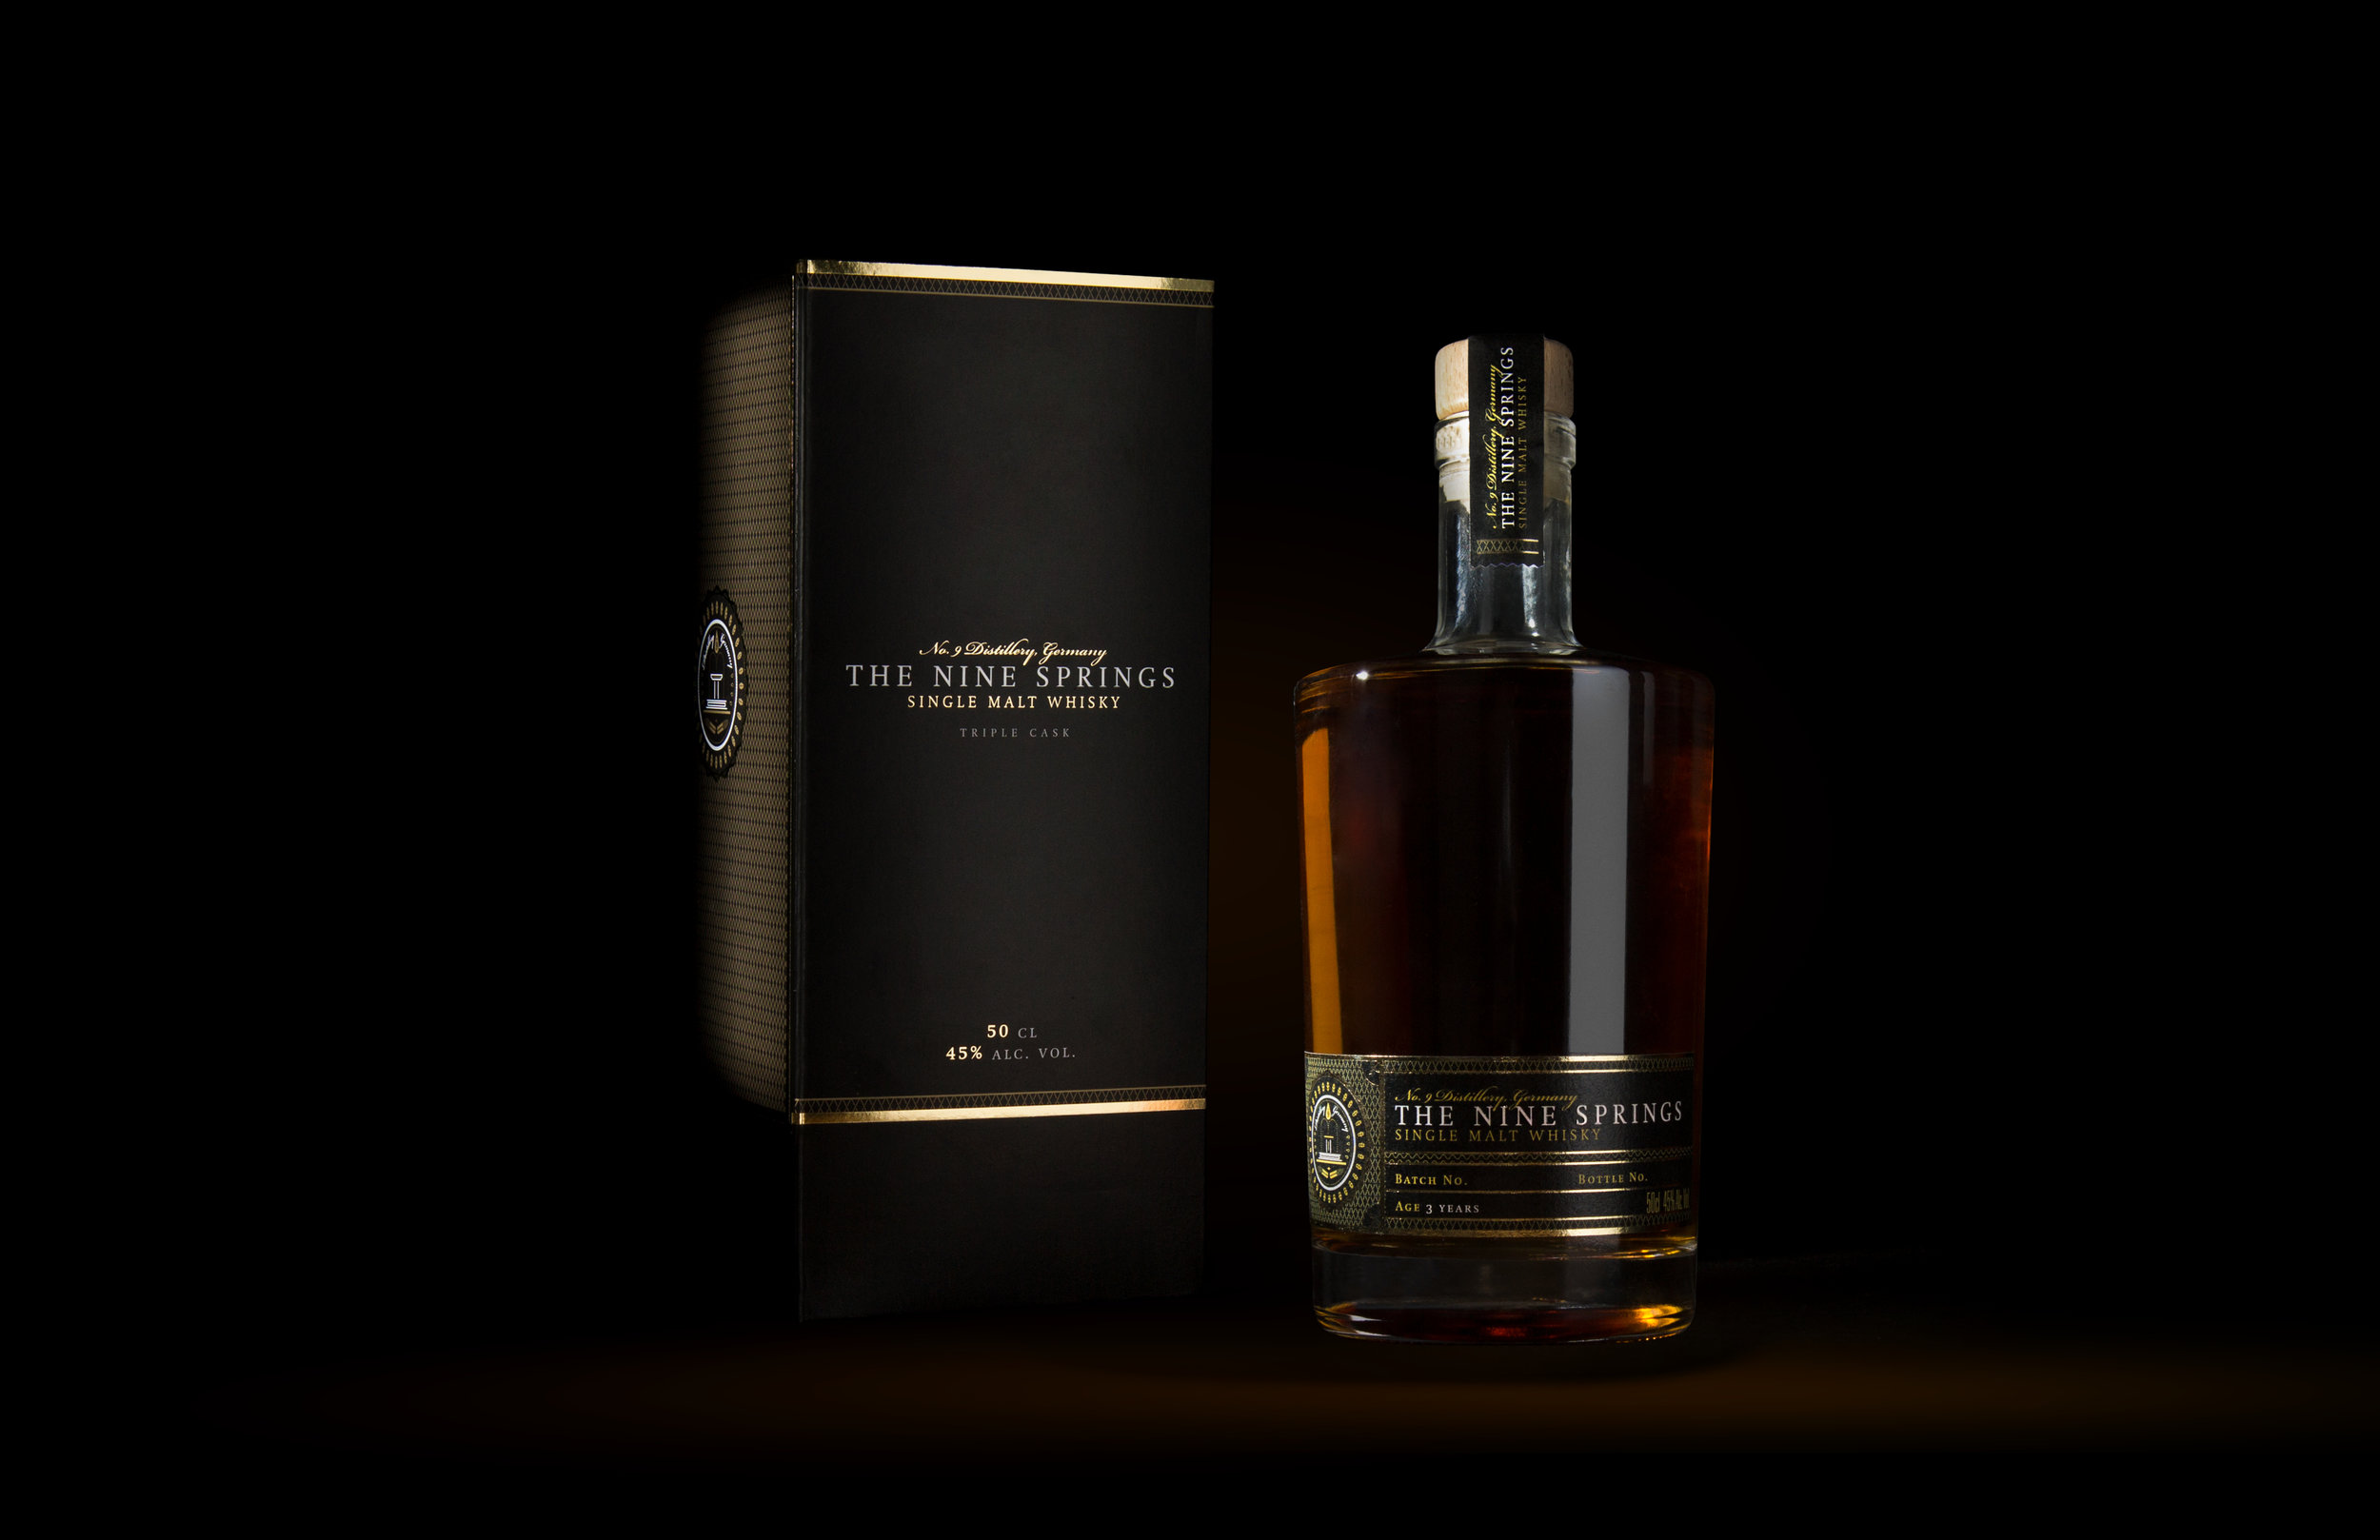 sons of ipanema Verpackungsdesign für The Nine Springs Single Malt Whiskey